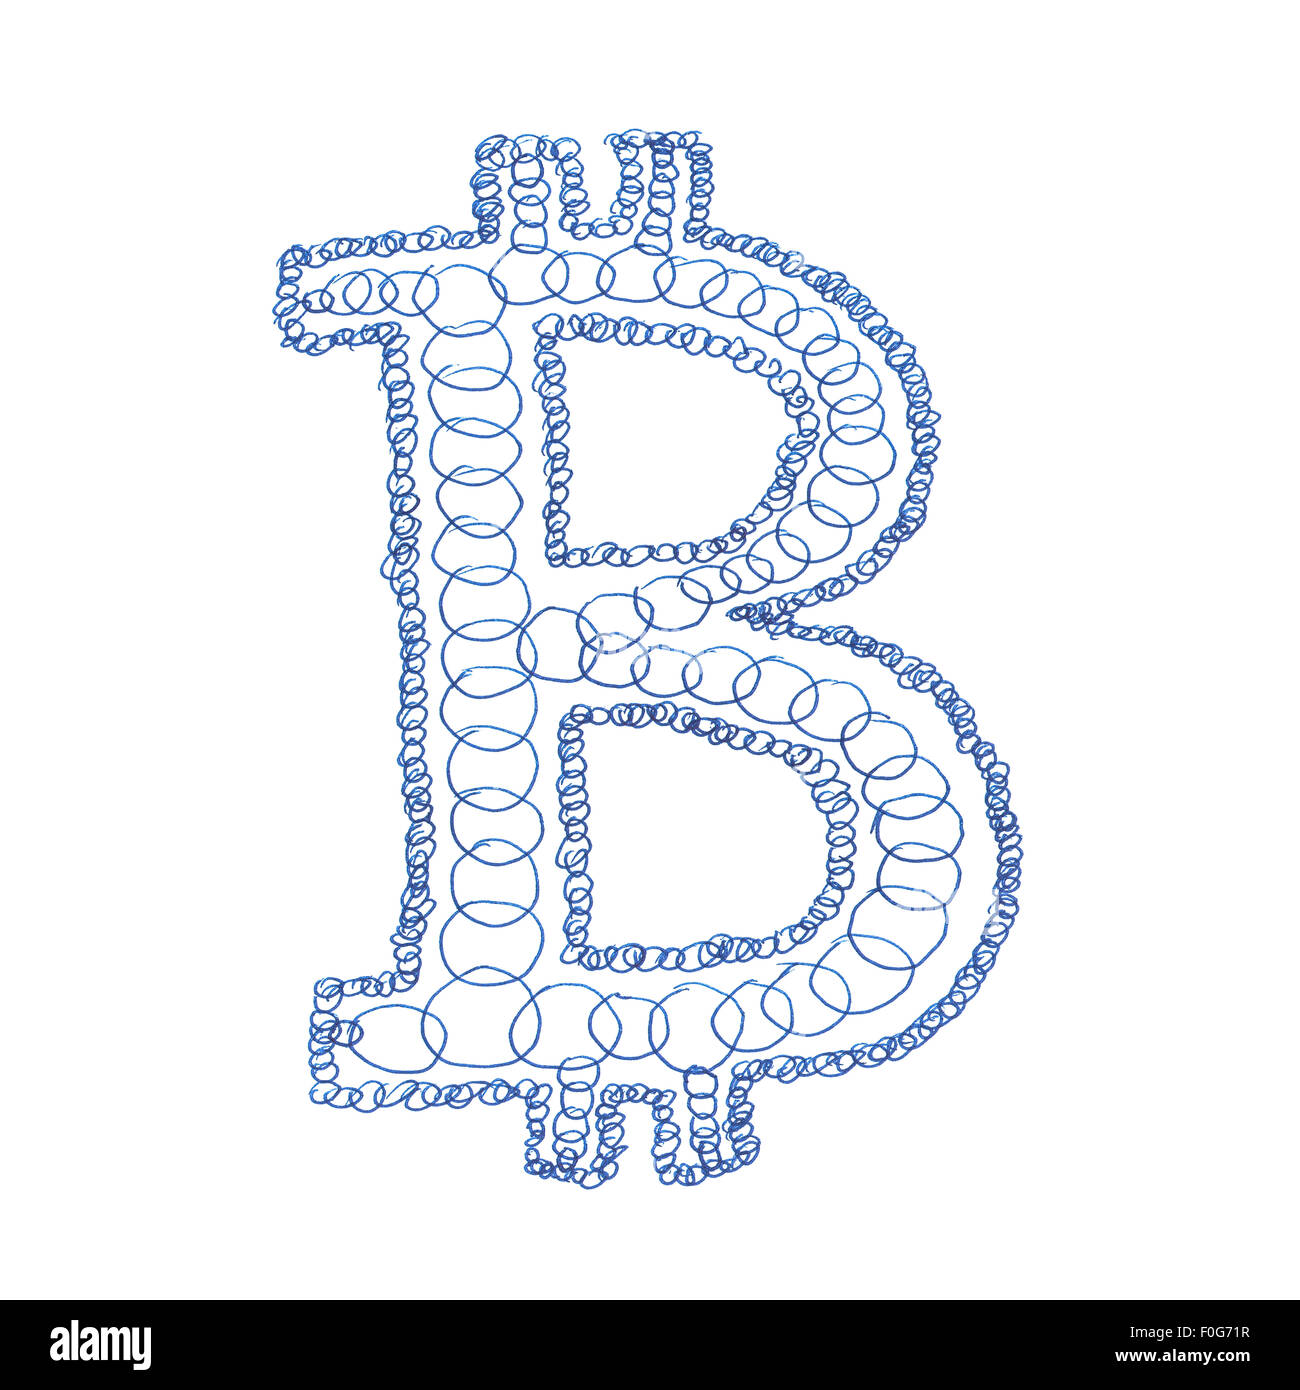 Chain Bitcoin Hand Drawn Symbol Of A Digital Decentralized Crypto